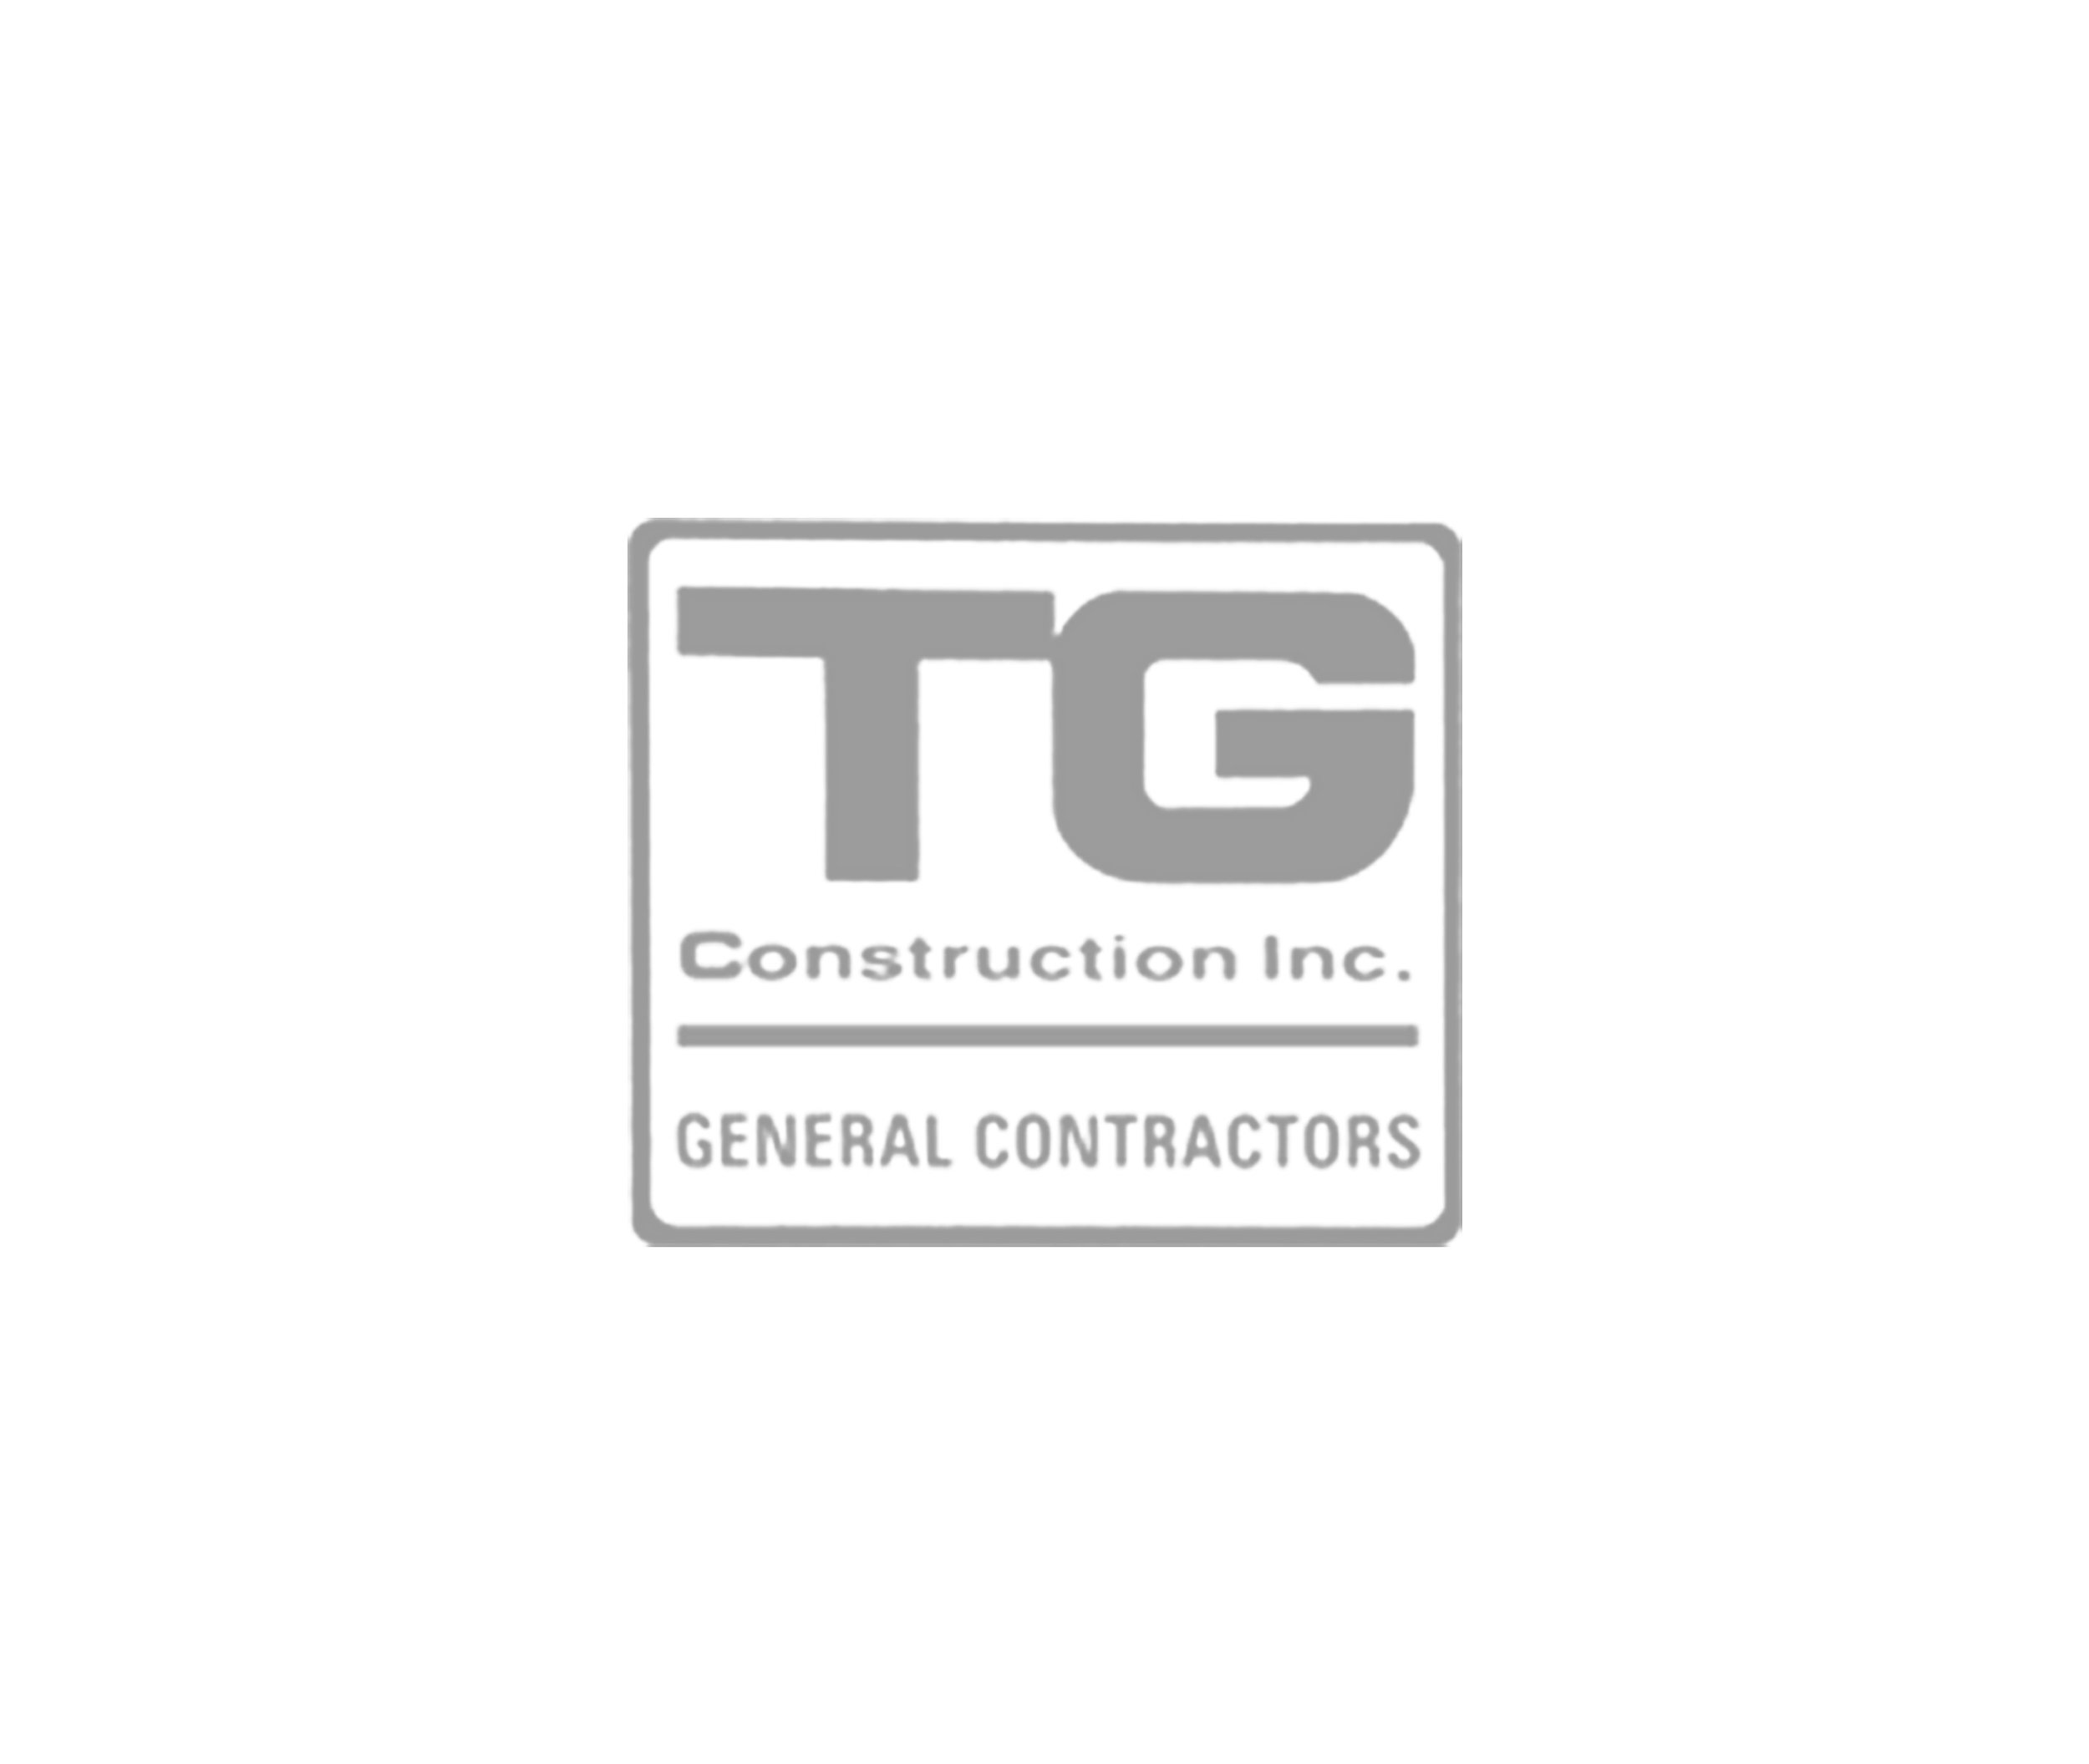 tgconstruction.jpg